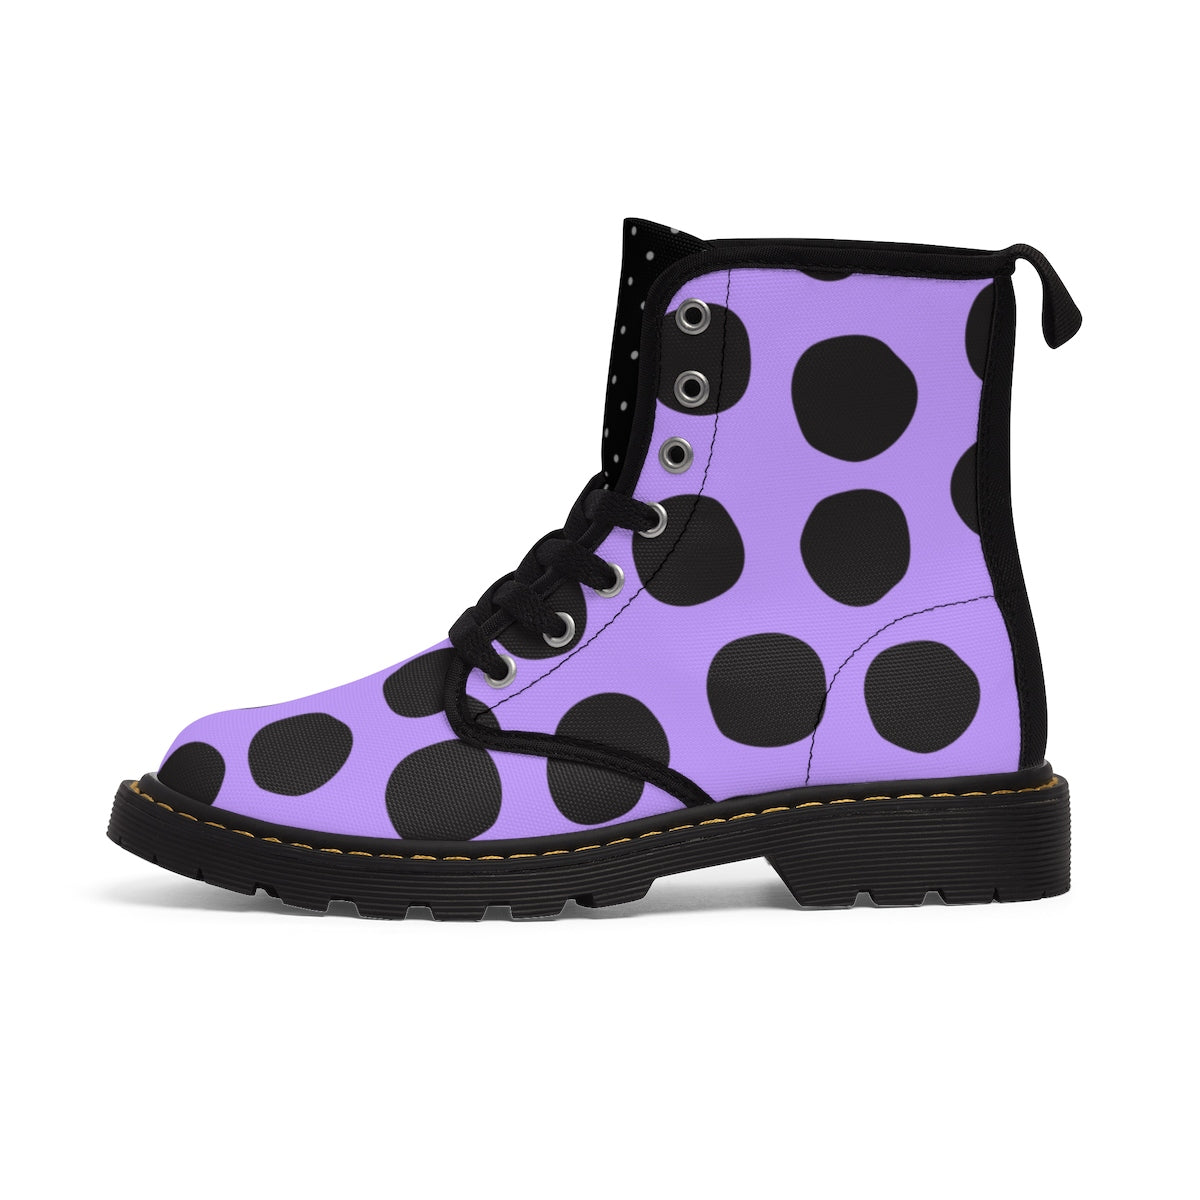 Ultraviolet Purple And Black Polka Dot Kids Martin Boots - Us 2.5 - Shoes